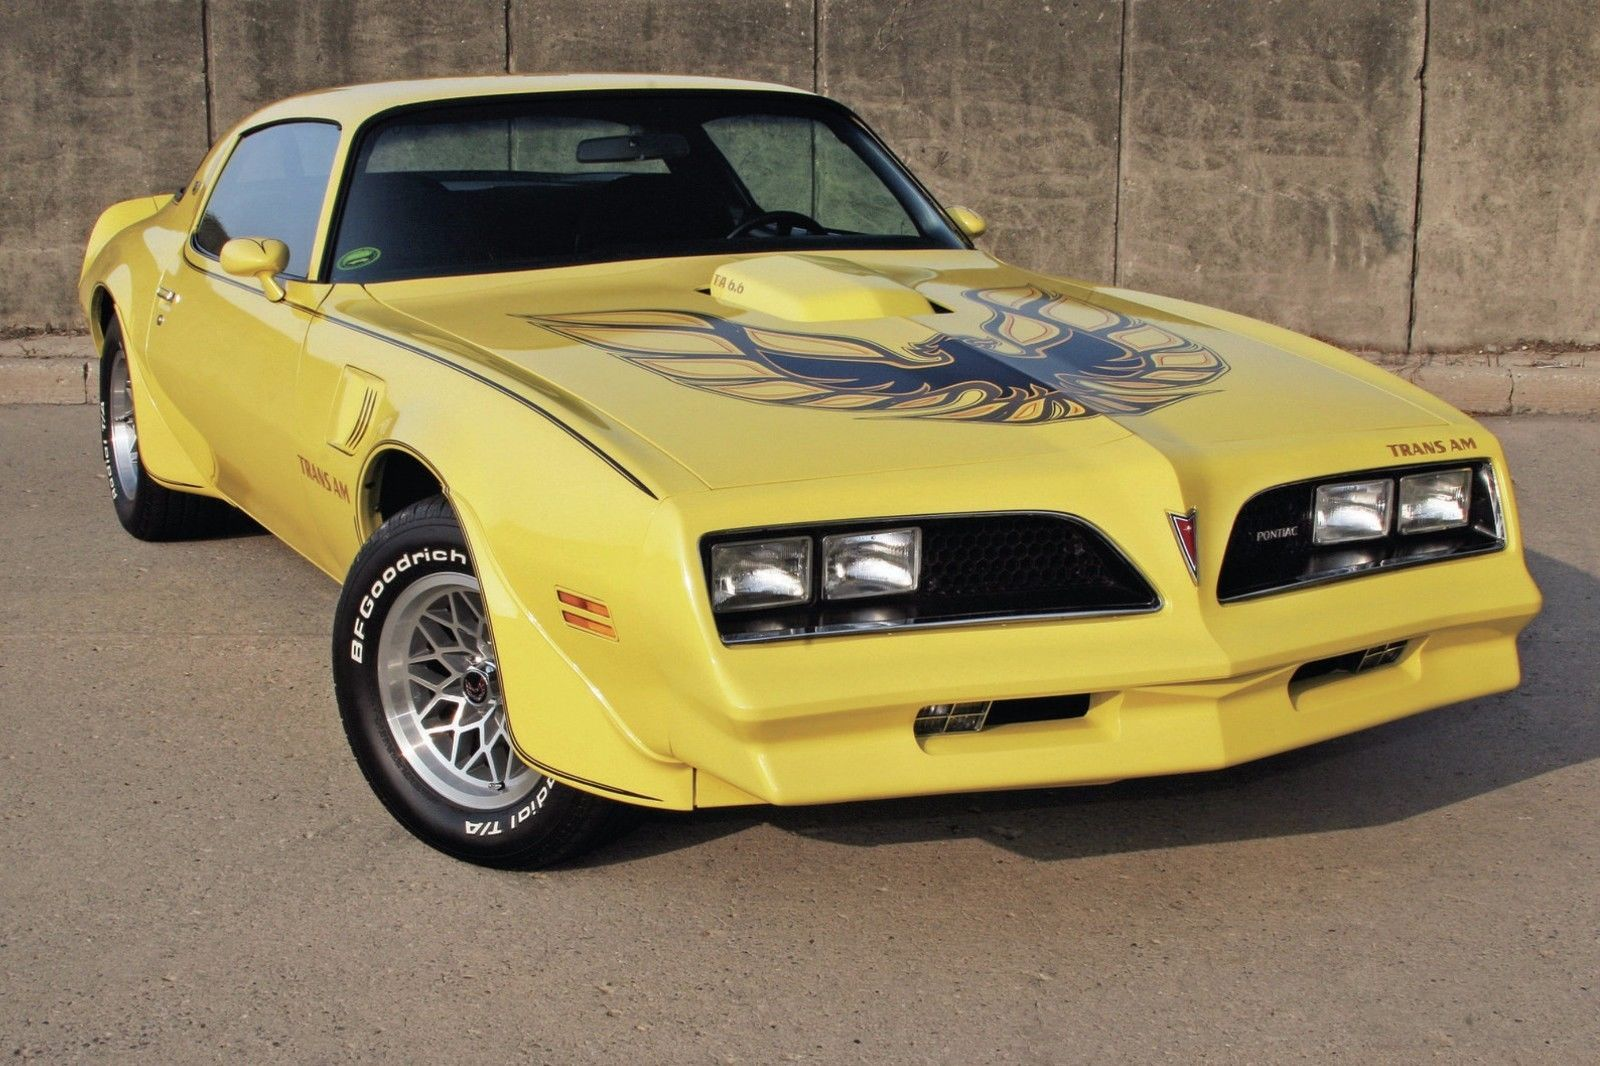 Primary image for 1977 Pontiac Trans Am side yellow fro, 24 x 36 Inch Poster, formula, 6.6 engine